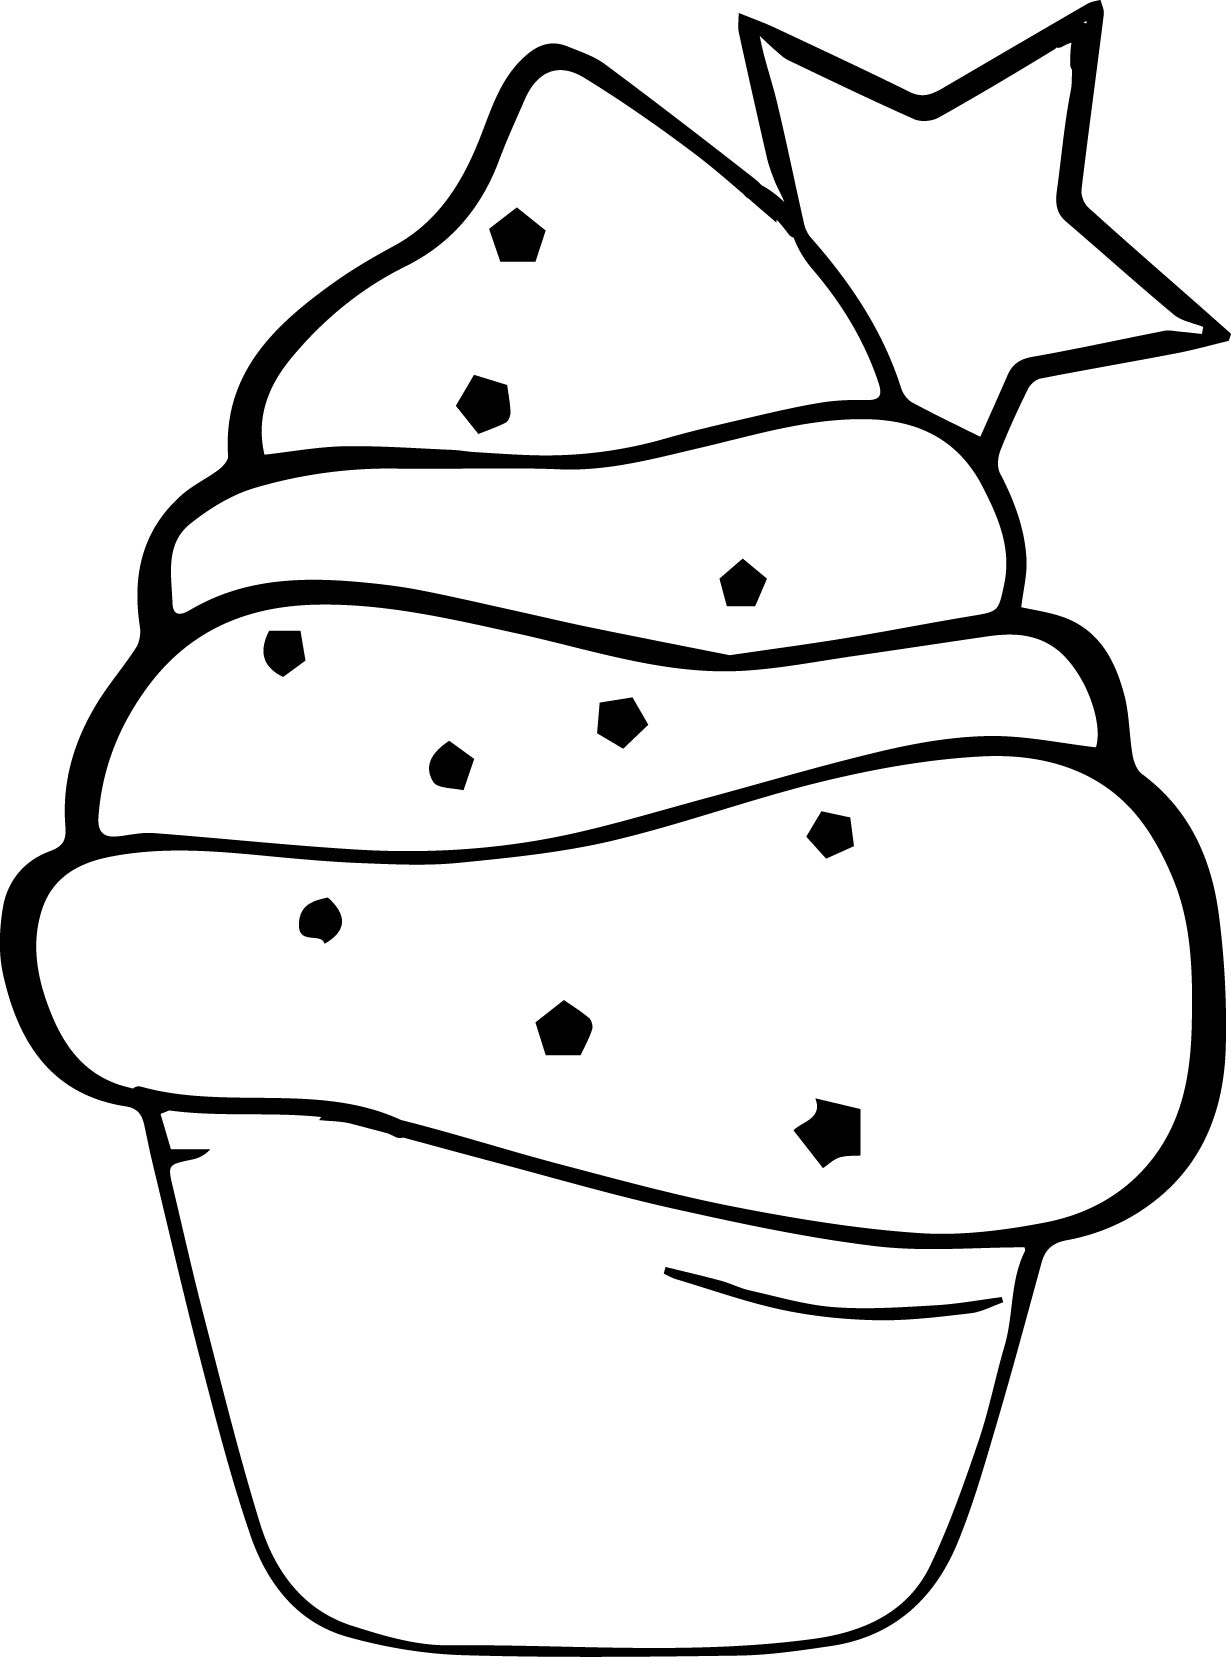 1231x1657 Cake Coloring Pages Cute Cupcake